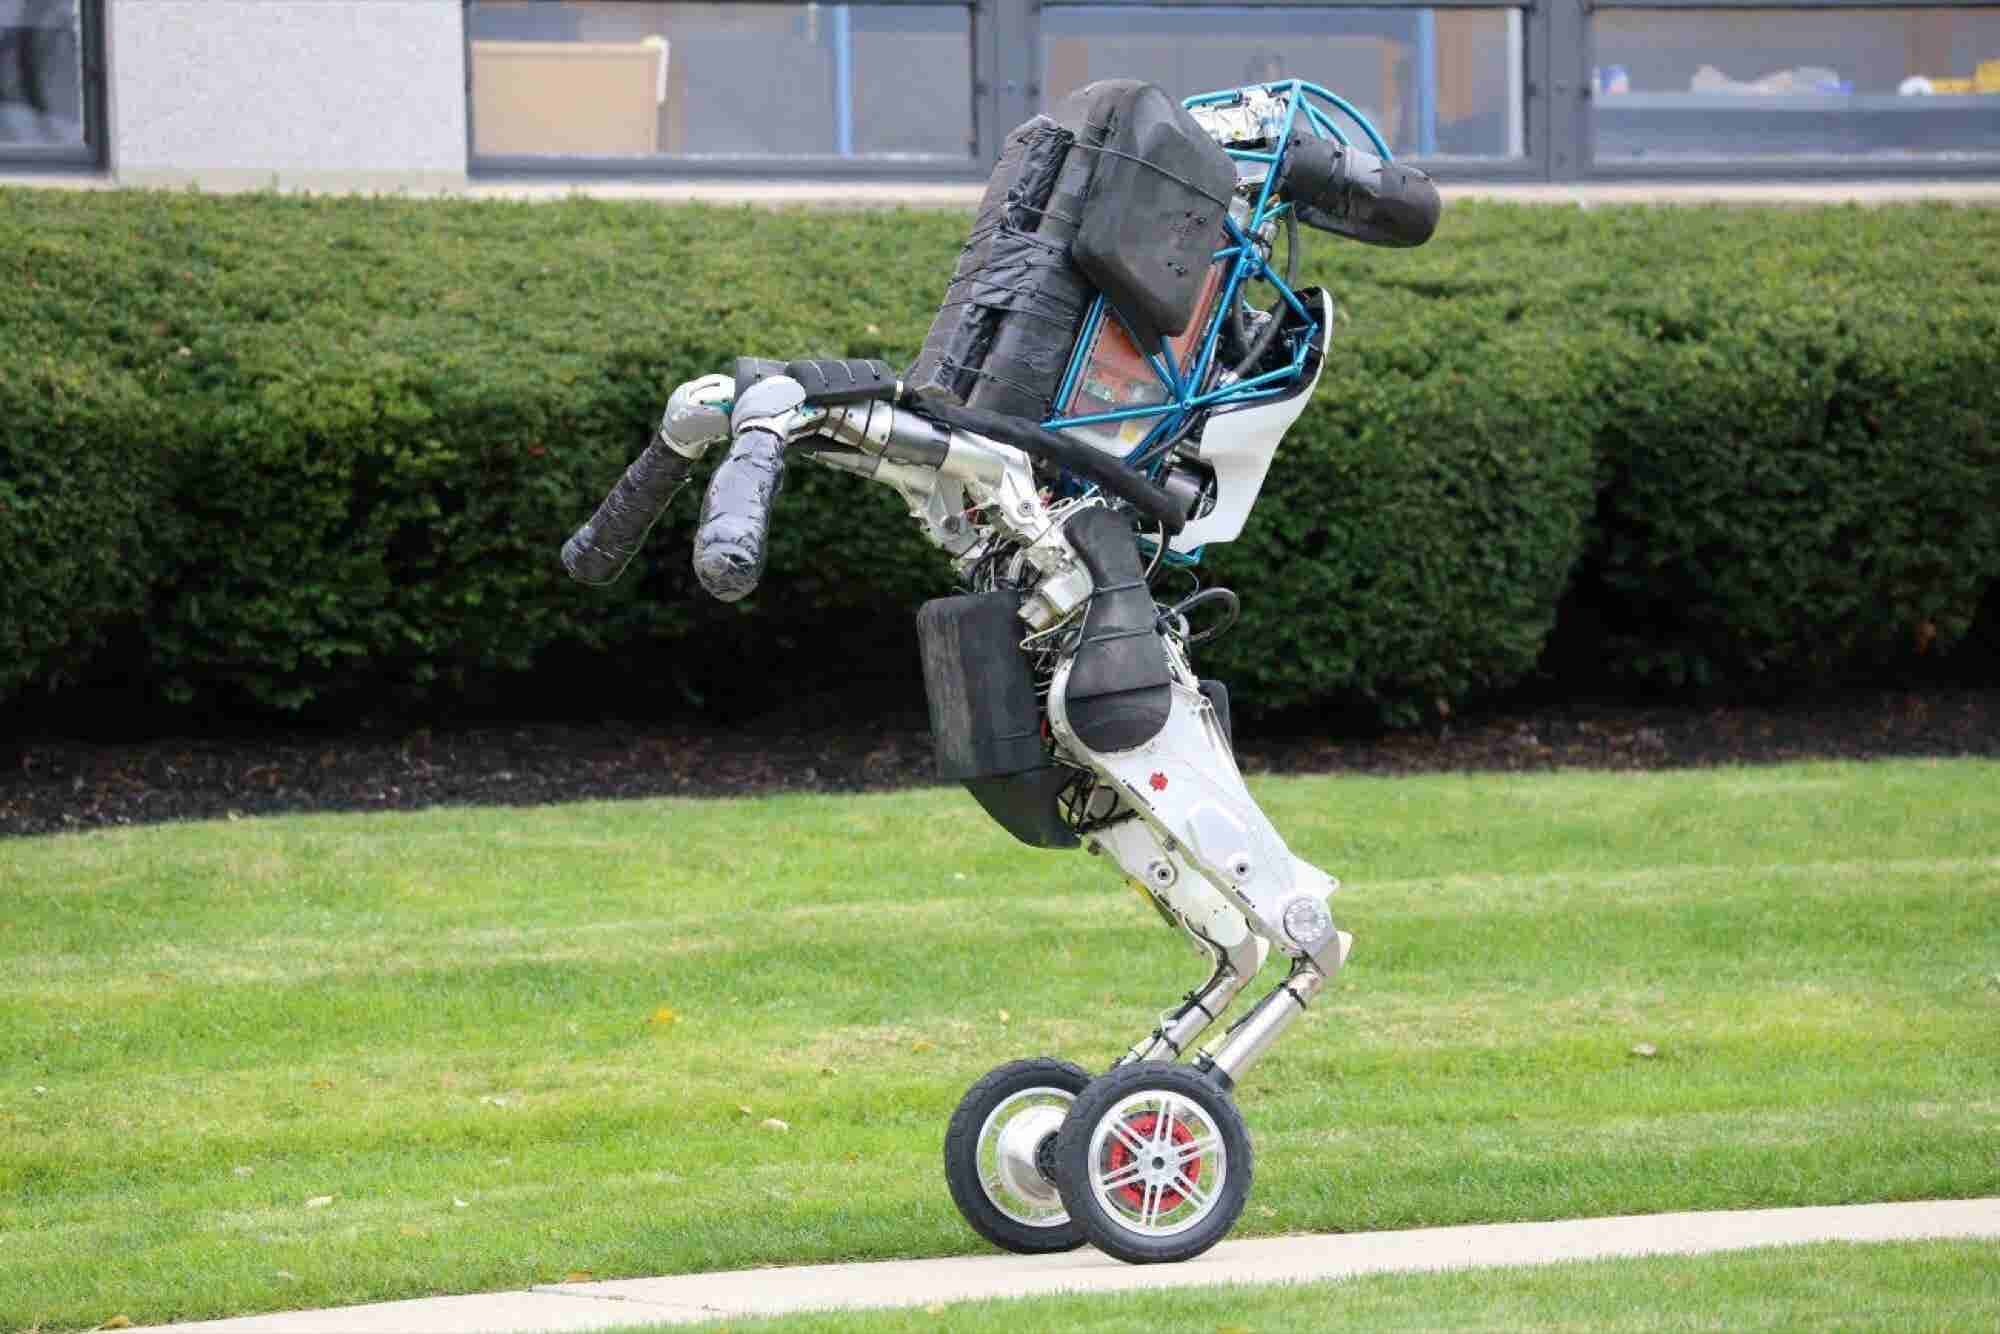 Alphabet Sells Boston Dynamics to Softbank